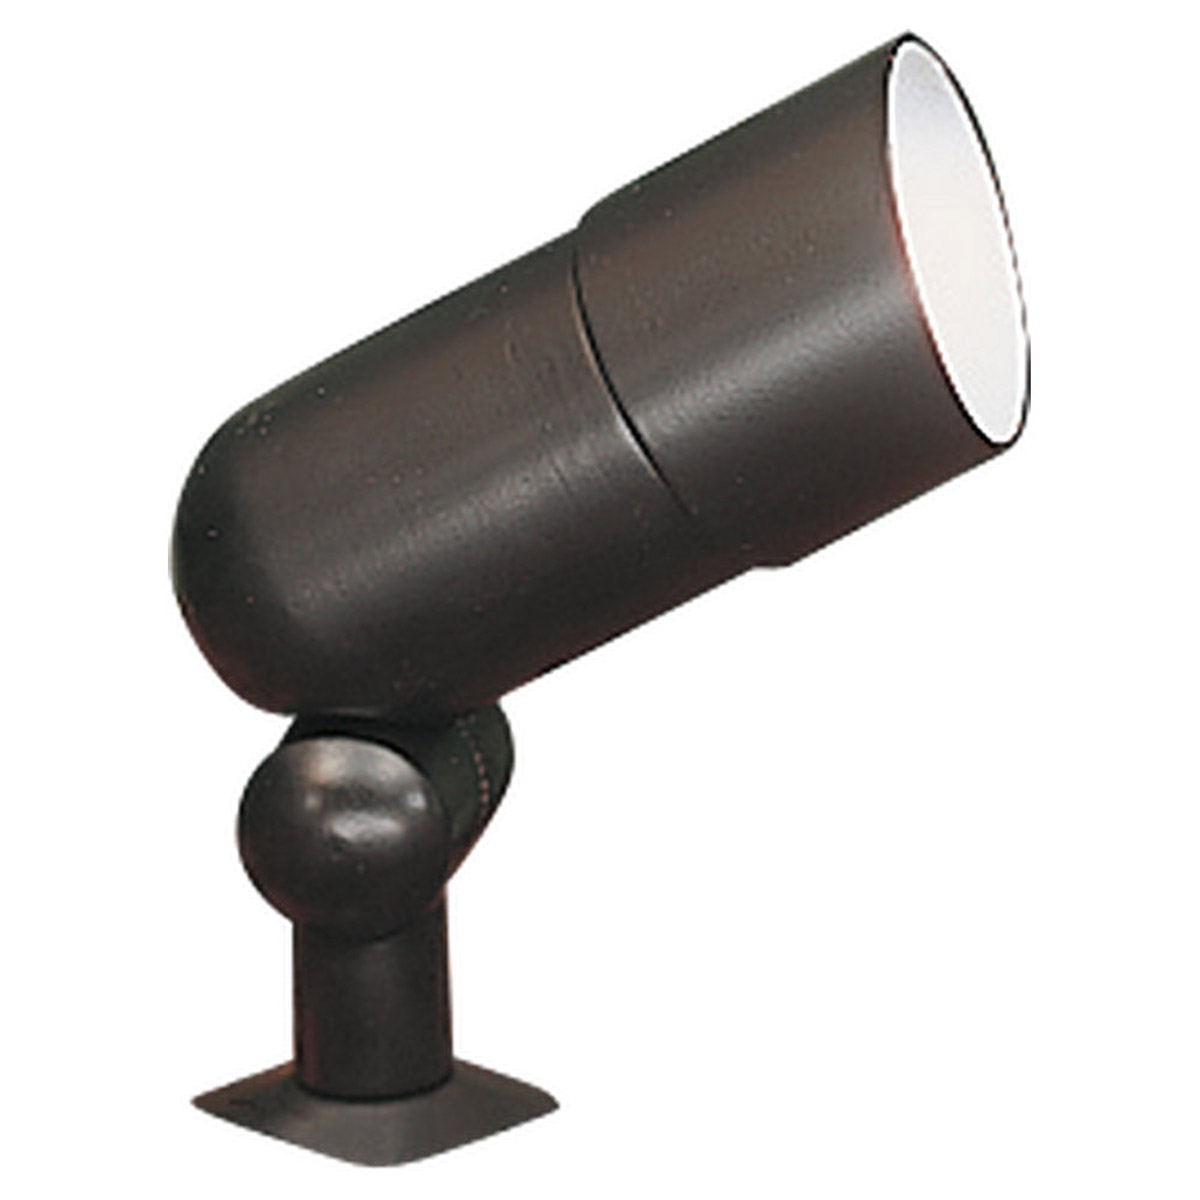 Sea Gull Lighting Landscape Lighting 120 Volt Die-Cast Landscape Accent Light in Black 9312-12 photo